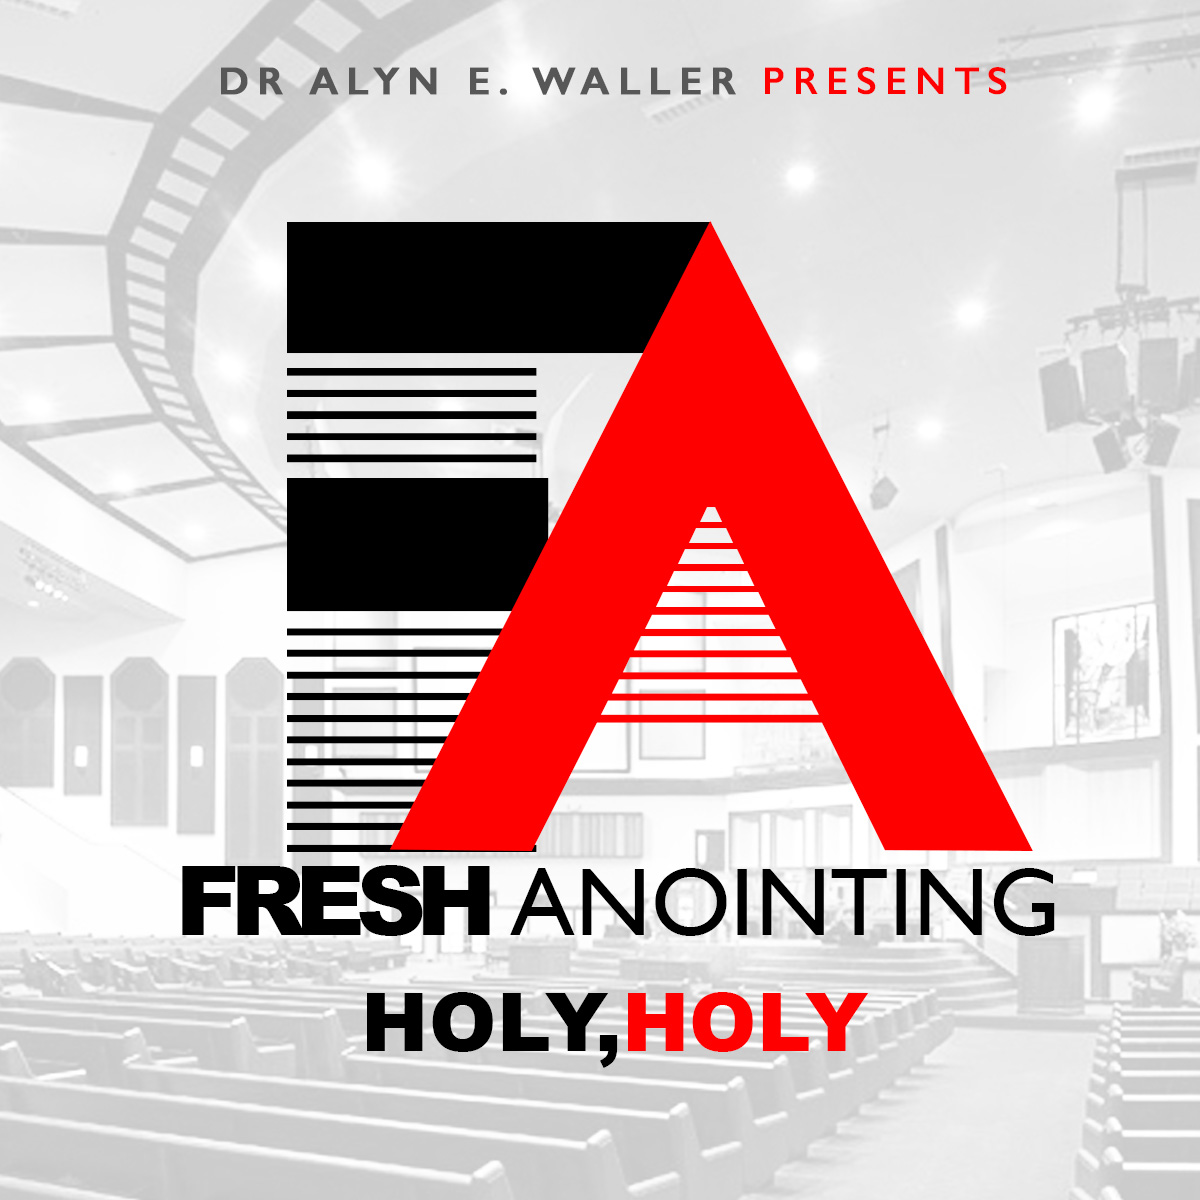 Stellar Award Nominated Choir Fresh Anointing Puts New Spin On Old Hymn